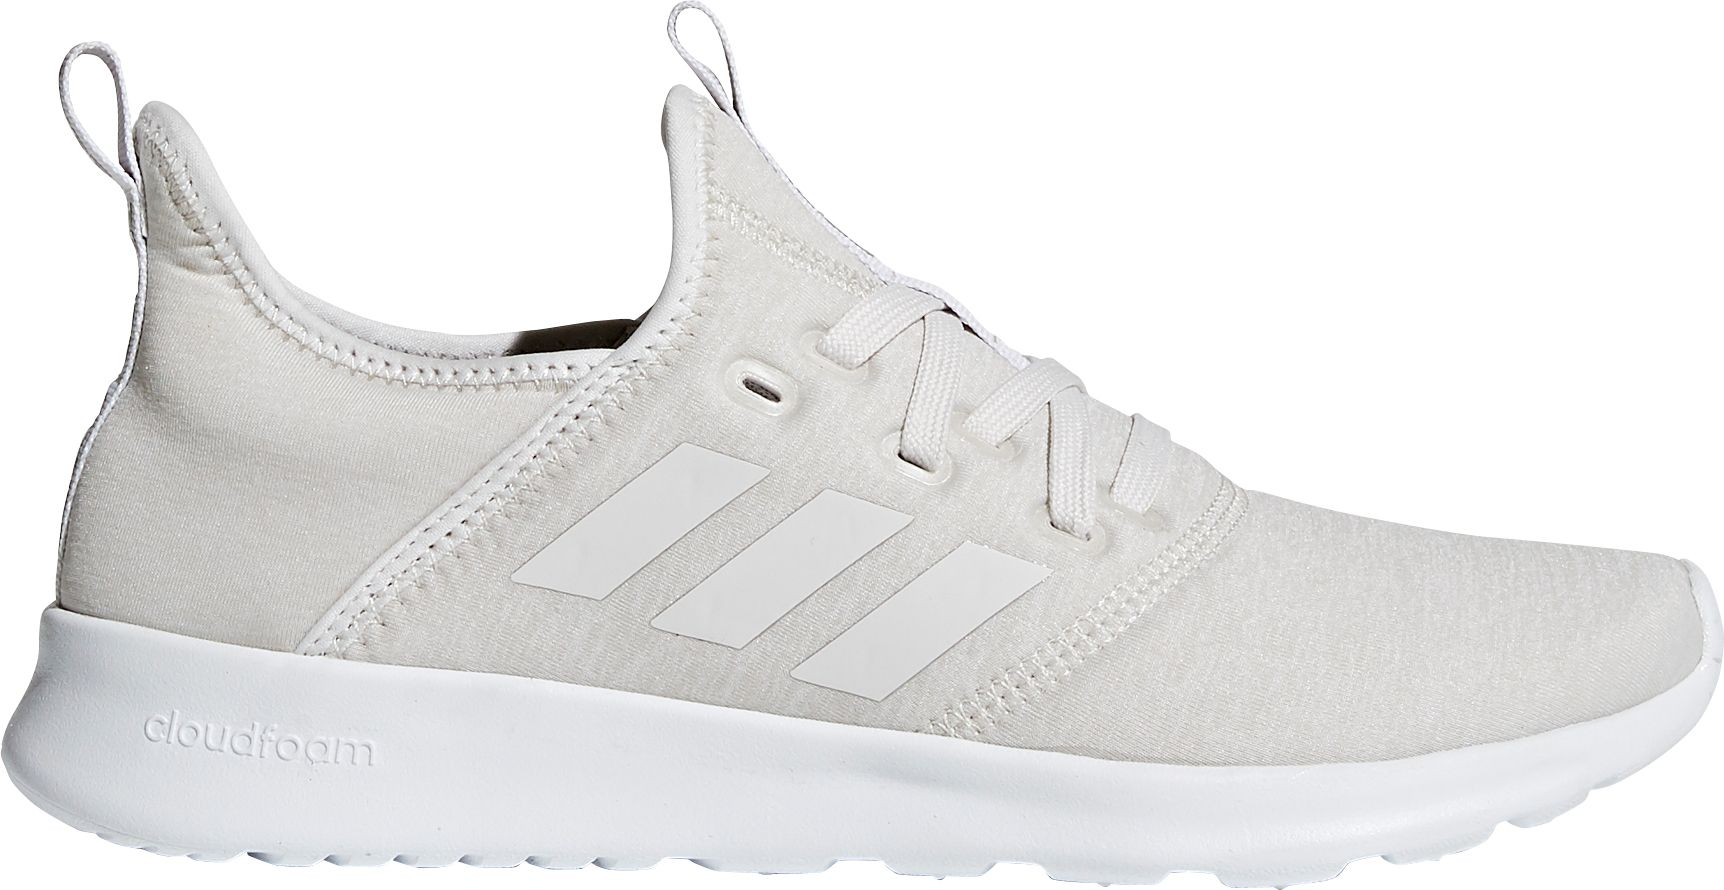 separation shoes 26f0e 07d33 adidas Womens Cloudfoam Pure Shoes, White